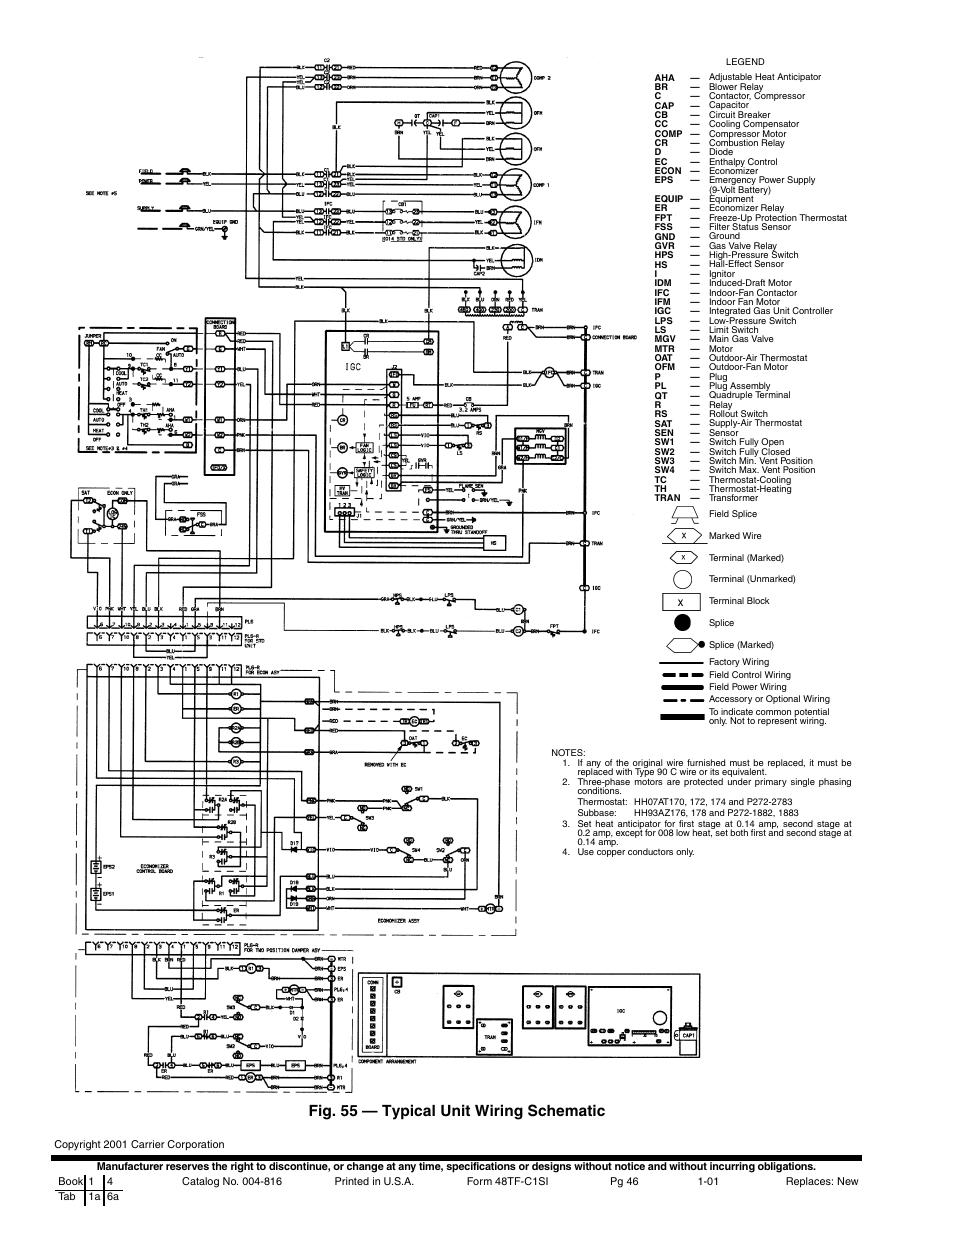 Carrier Economizer Wiring Diagram : 33 Wiring Diagram